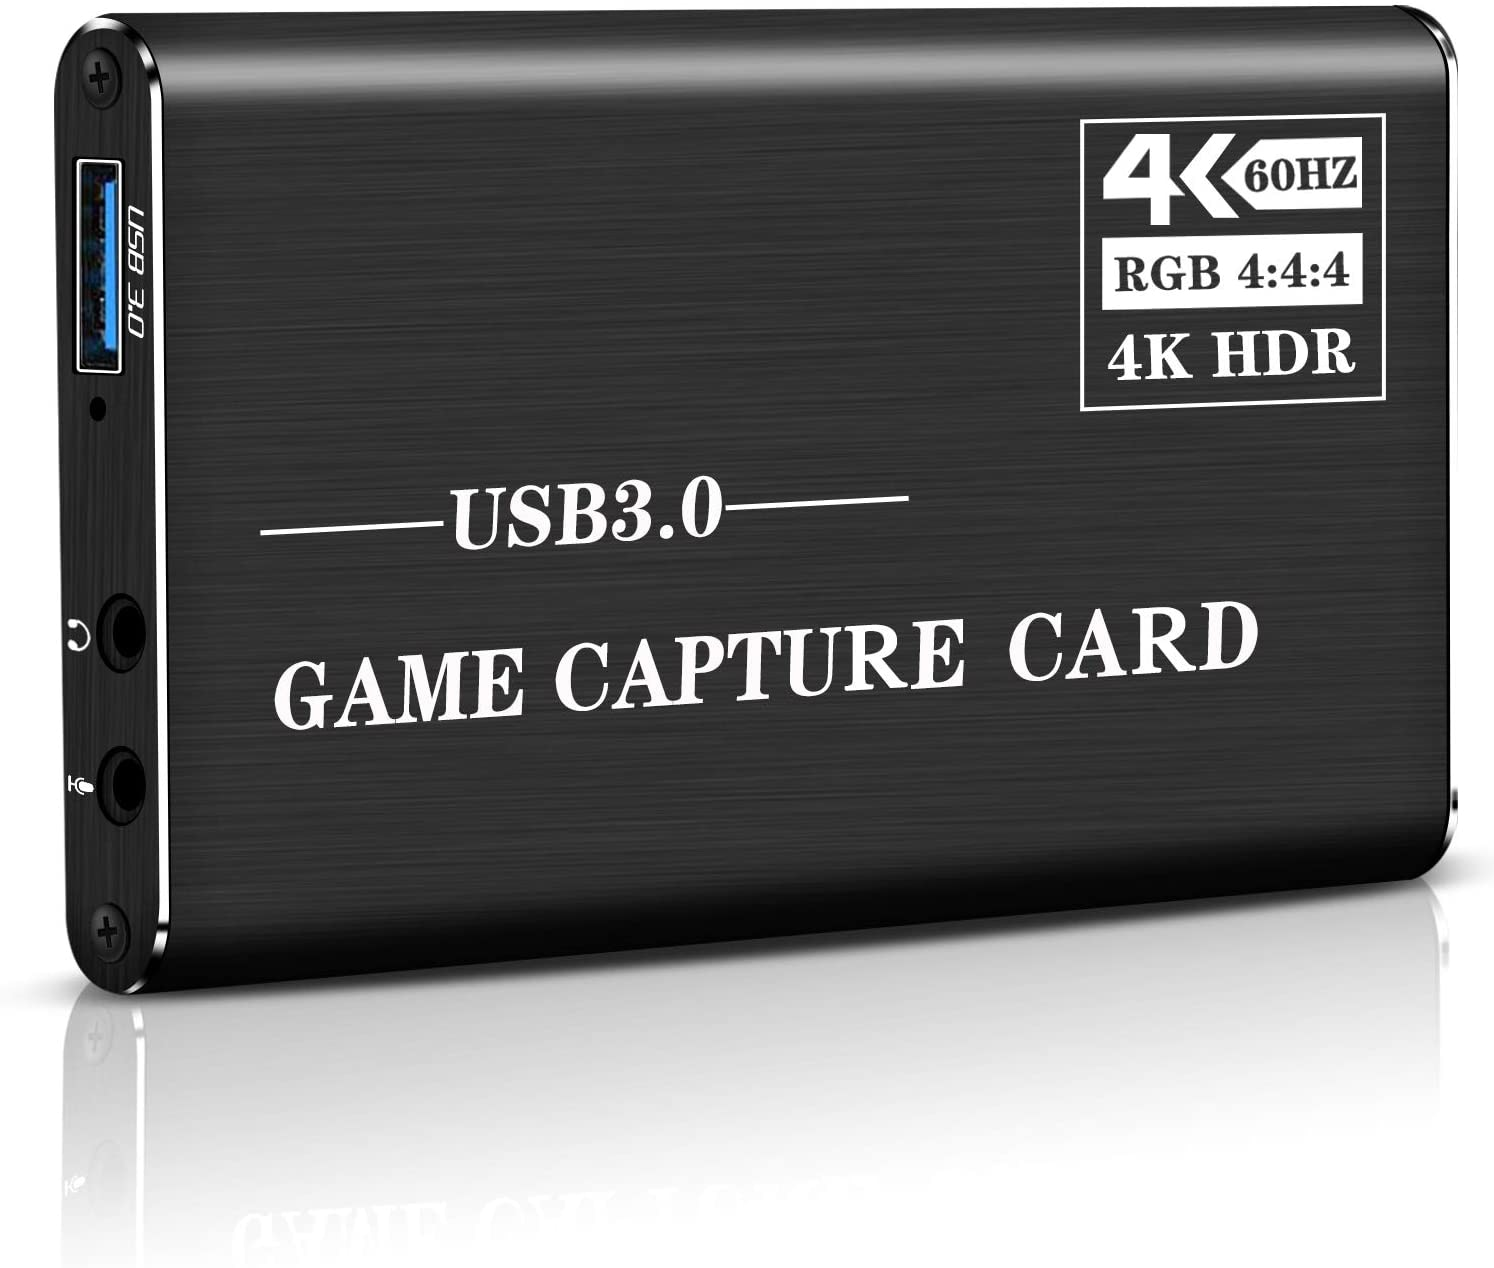 best hd 1080p hd 3g sdi hdmi vga ypbpr dvi capture dongle live streaming video audio capture card game video grabber Y&H 4K Game Capture Cards,HDMI-compatible to USB3.0 Audio Video Grabber HD 1080P 60HZ Live Streaming Game Recorder Device